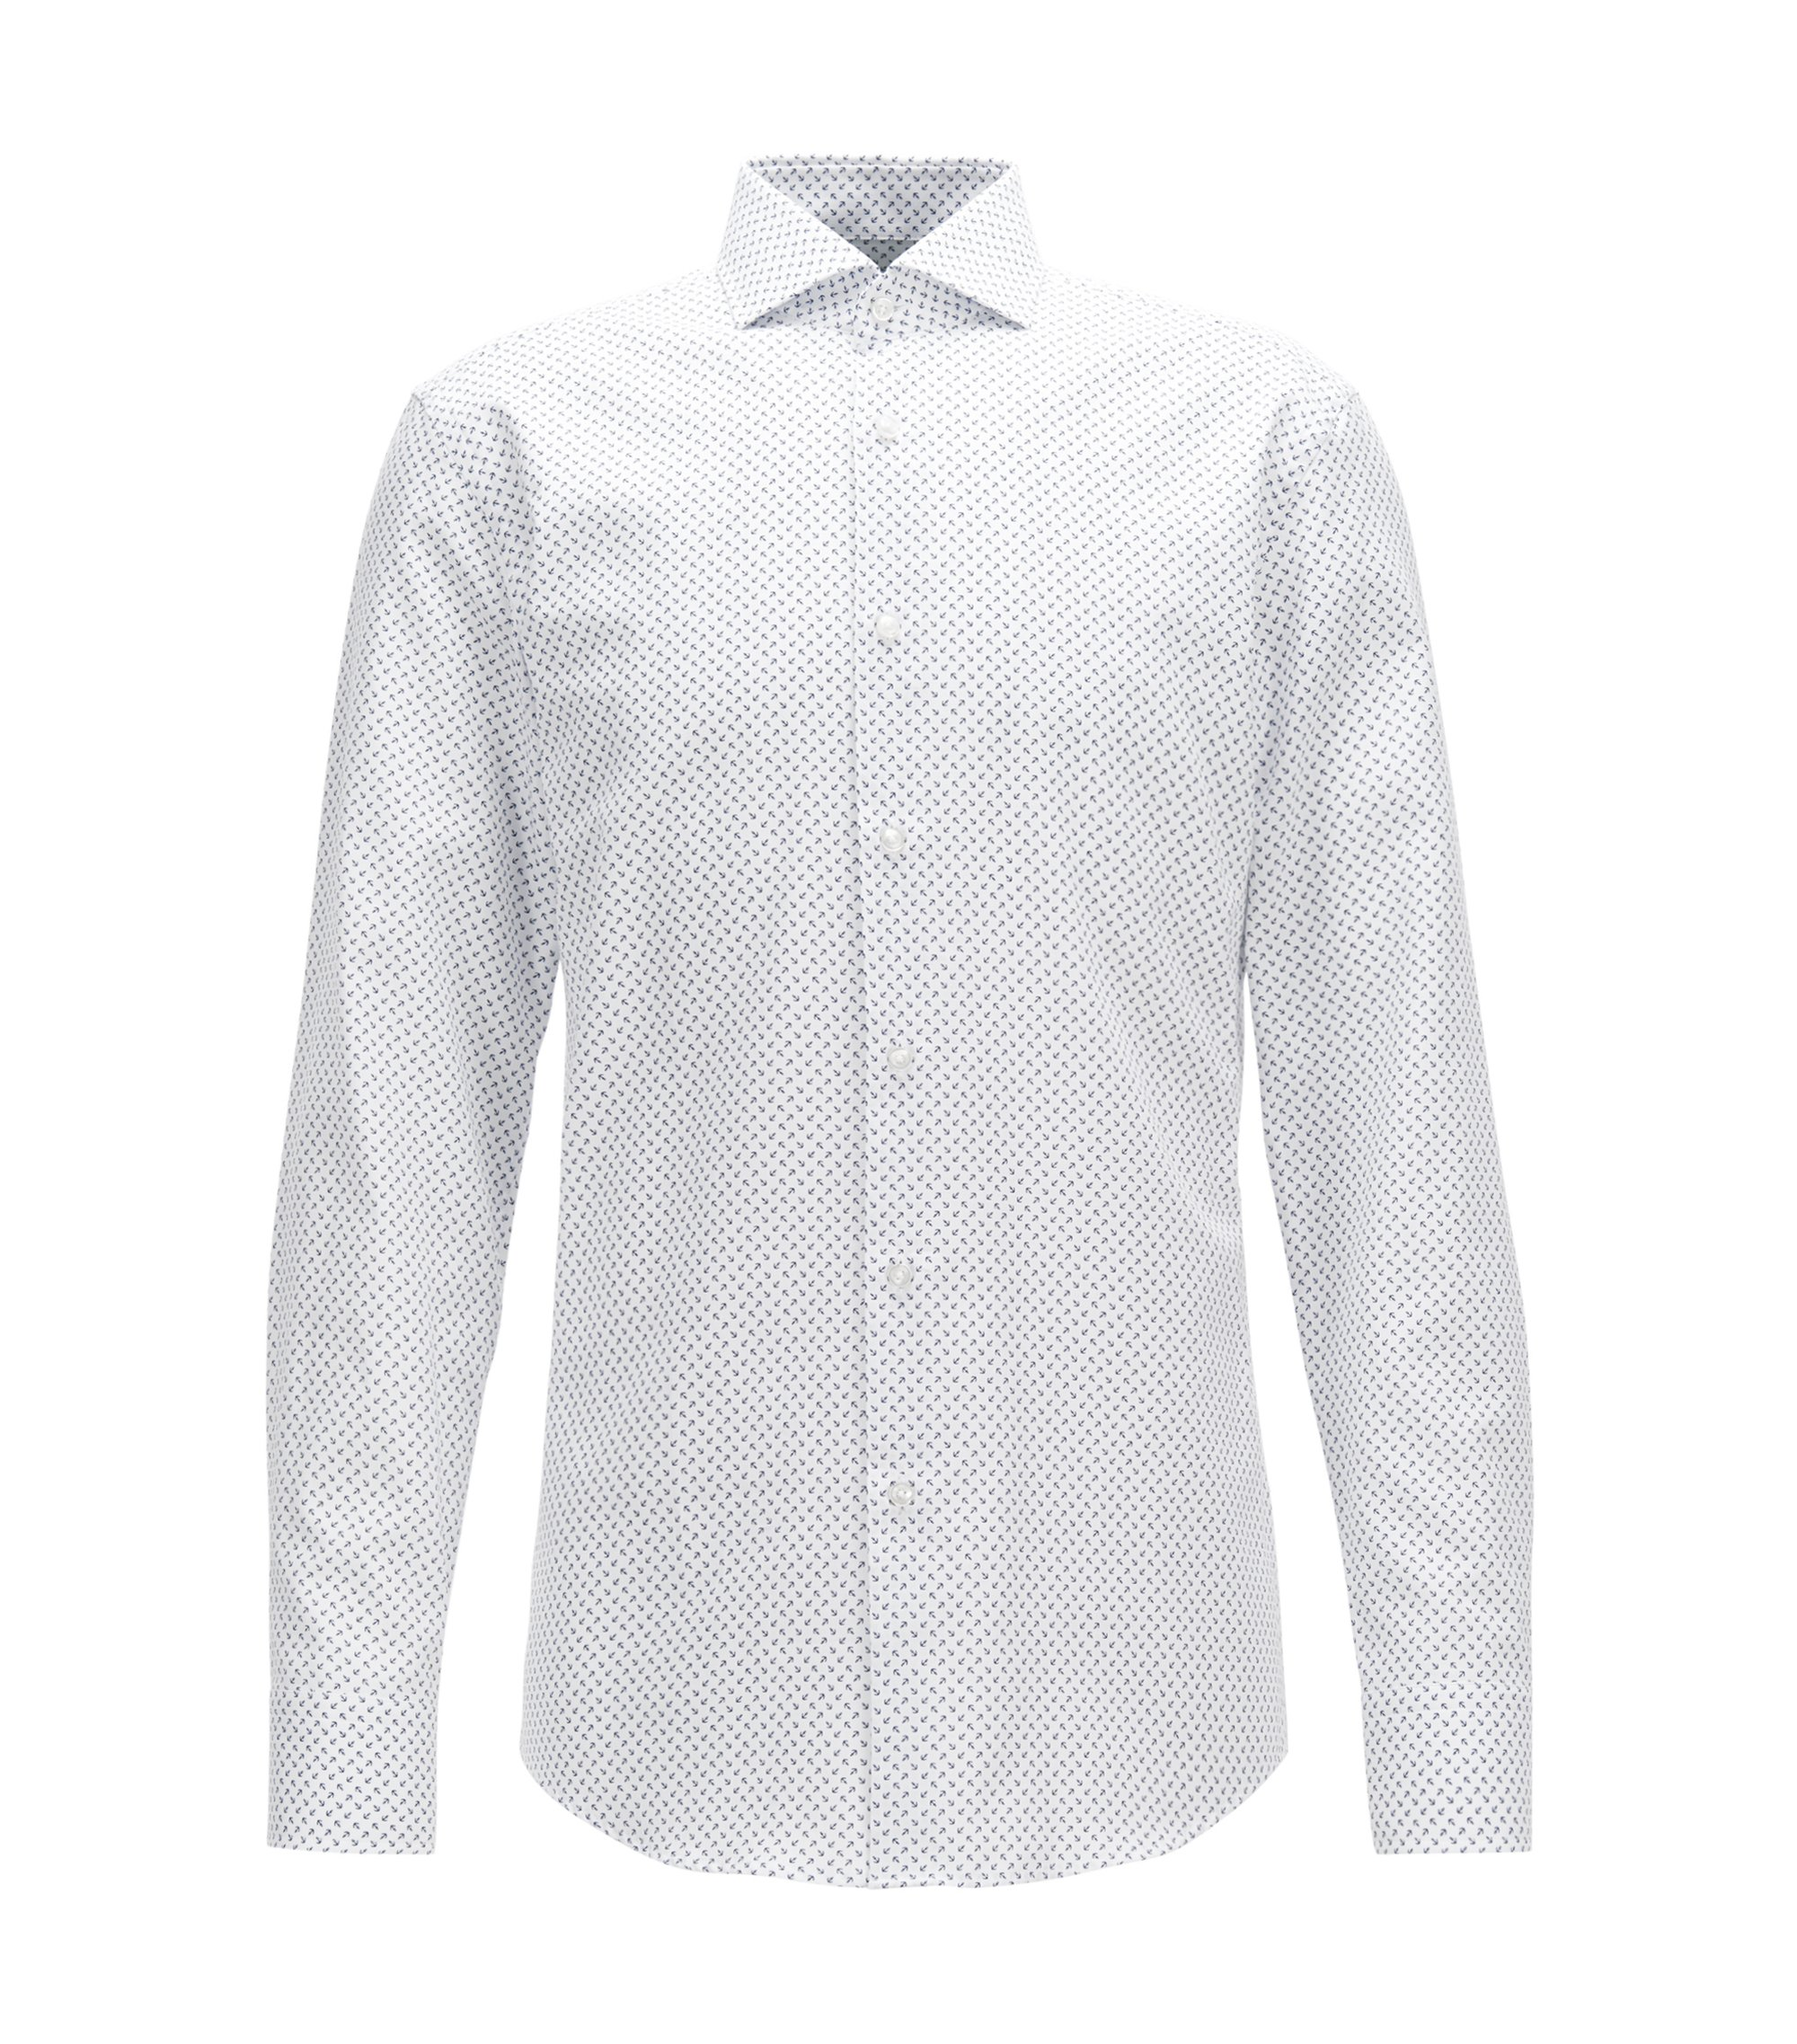 Printed Cotton Dress Shirt, Slim Fit | Jason, White